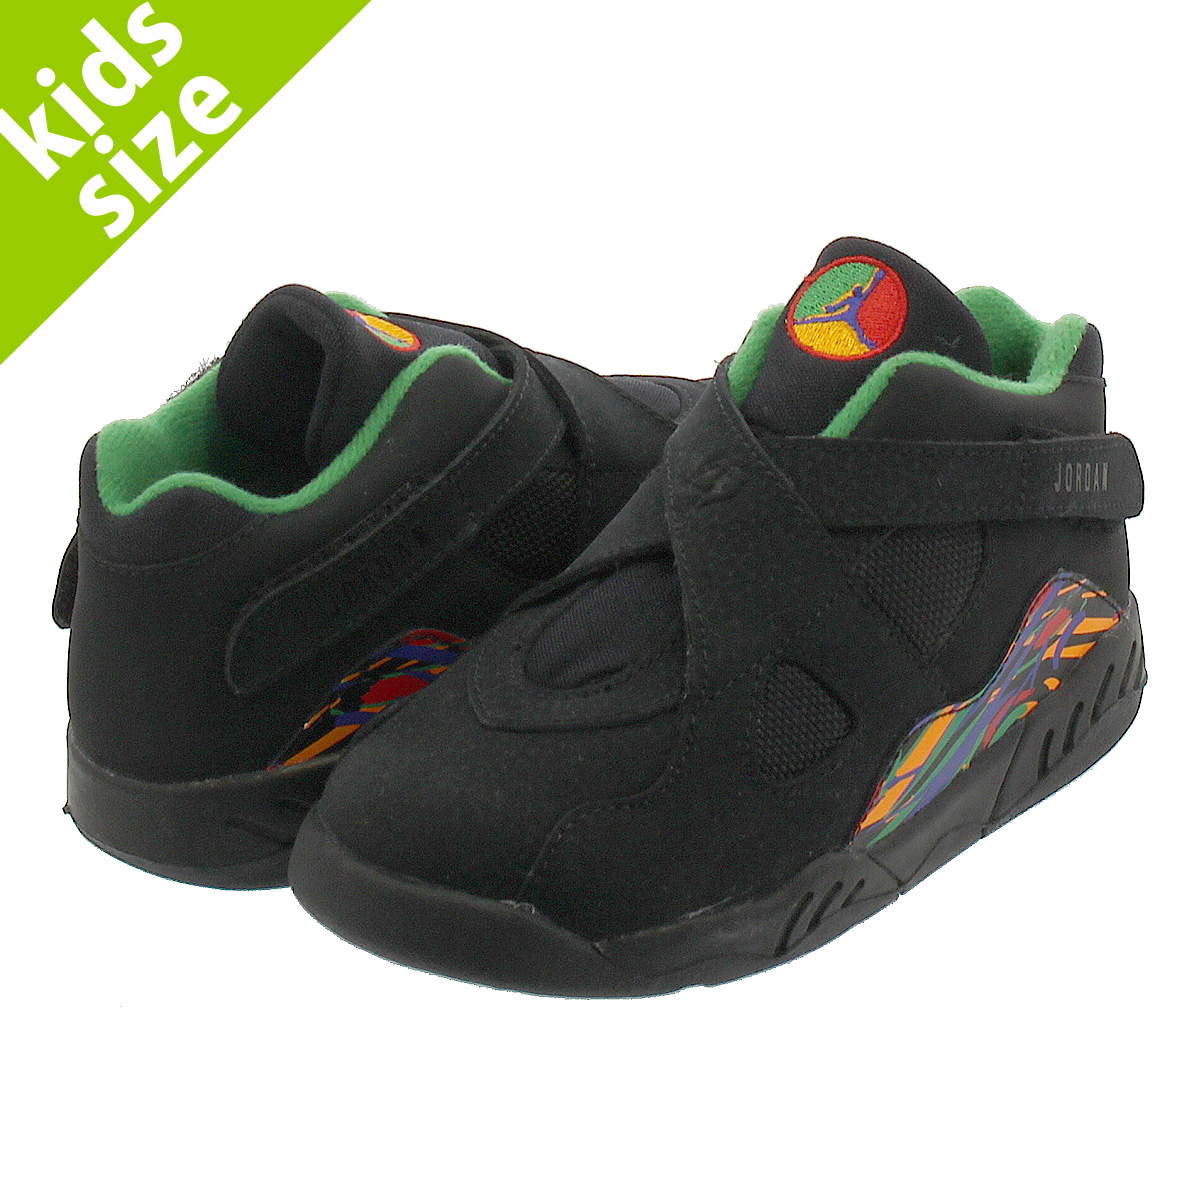 NIKE AIR JORDAN 8 RETRO BT ナイキ エア ジョーダン 8 レトロ BT BLACK/LIGHT CONCORD/ALOE VERDE 305360-004